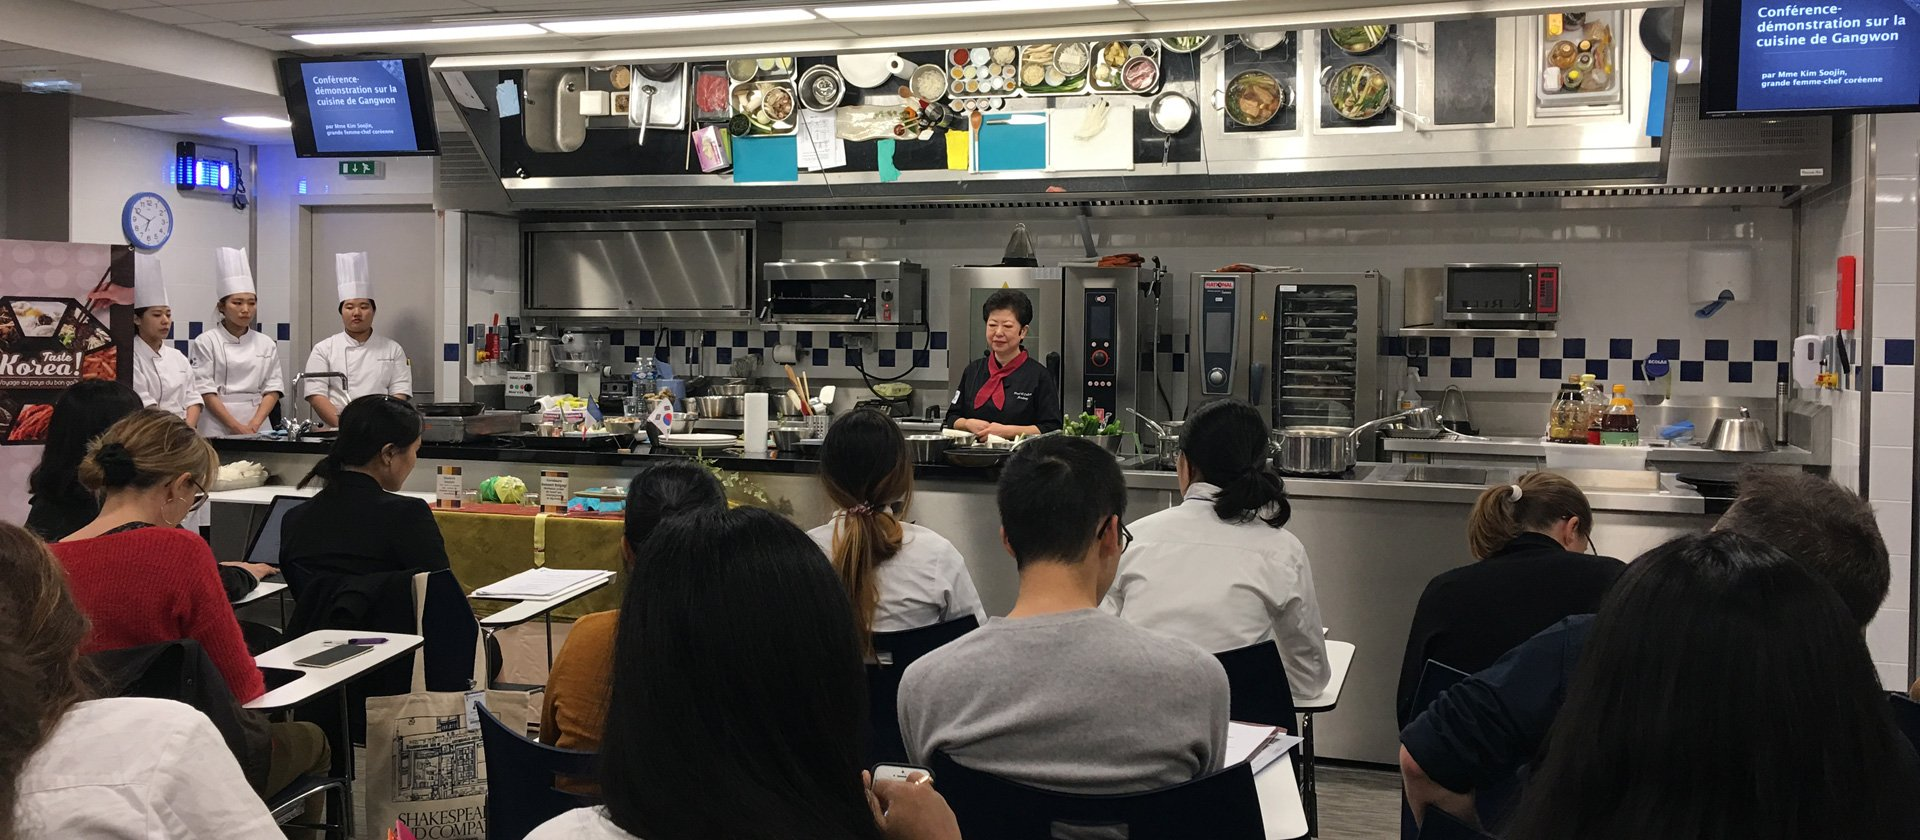 Conference-demonstration on the cuisine of Gangwon by Kim Soojin, a leading female Korean chef